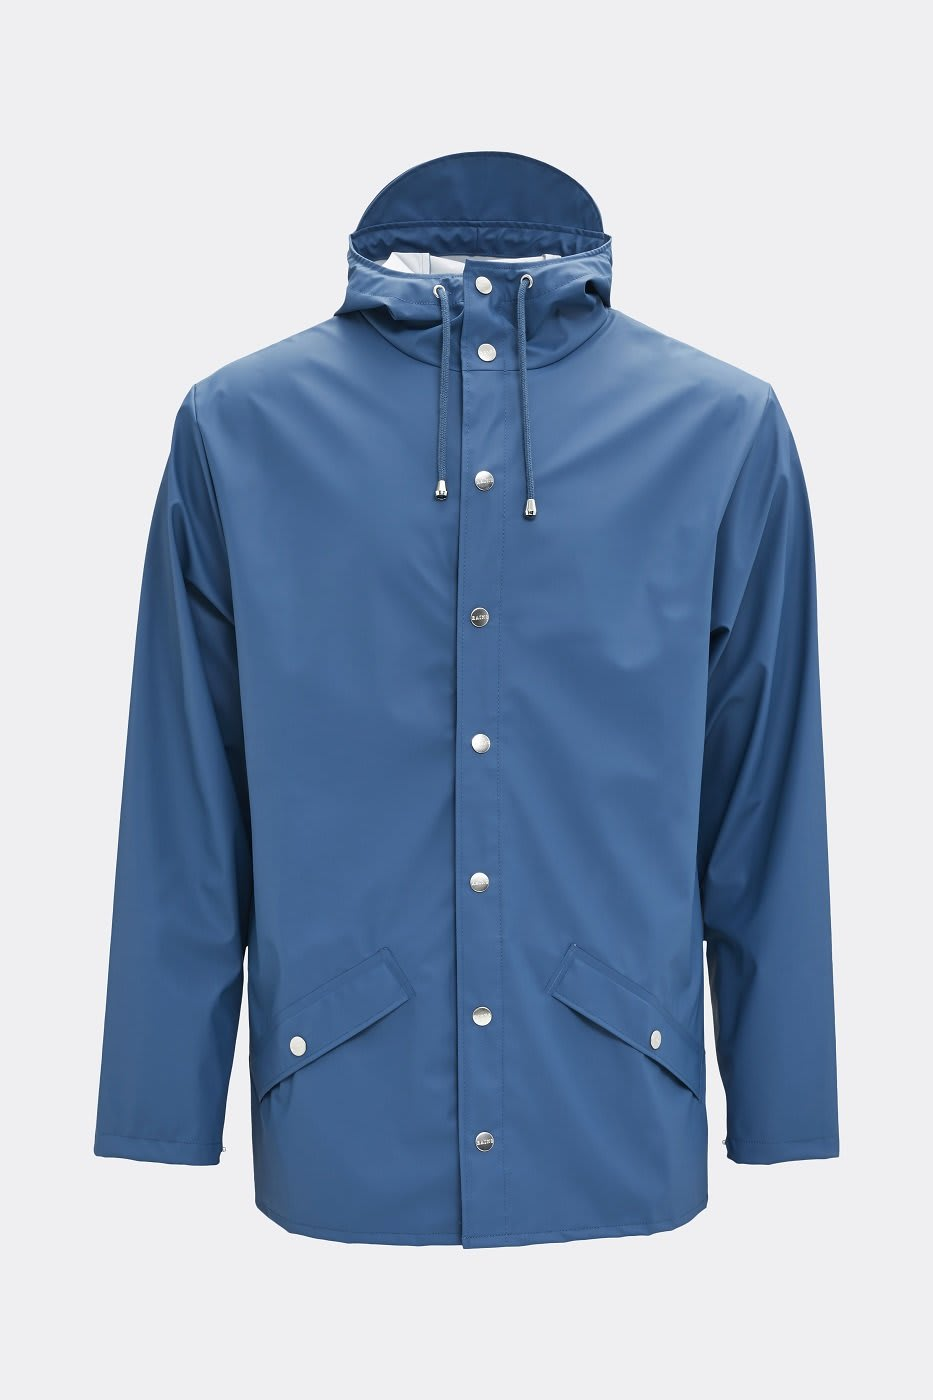 Rains Classic Jacket In Faded Blue